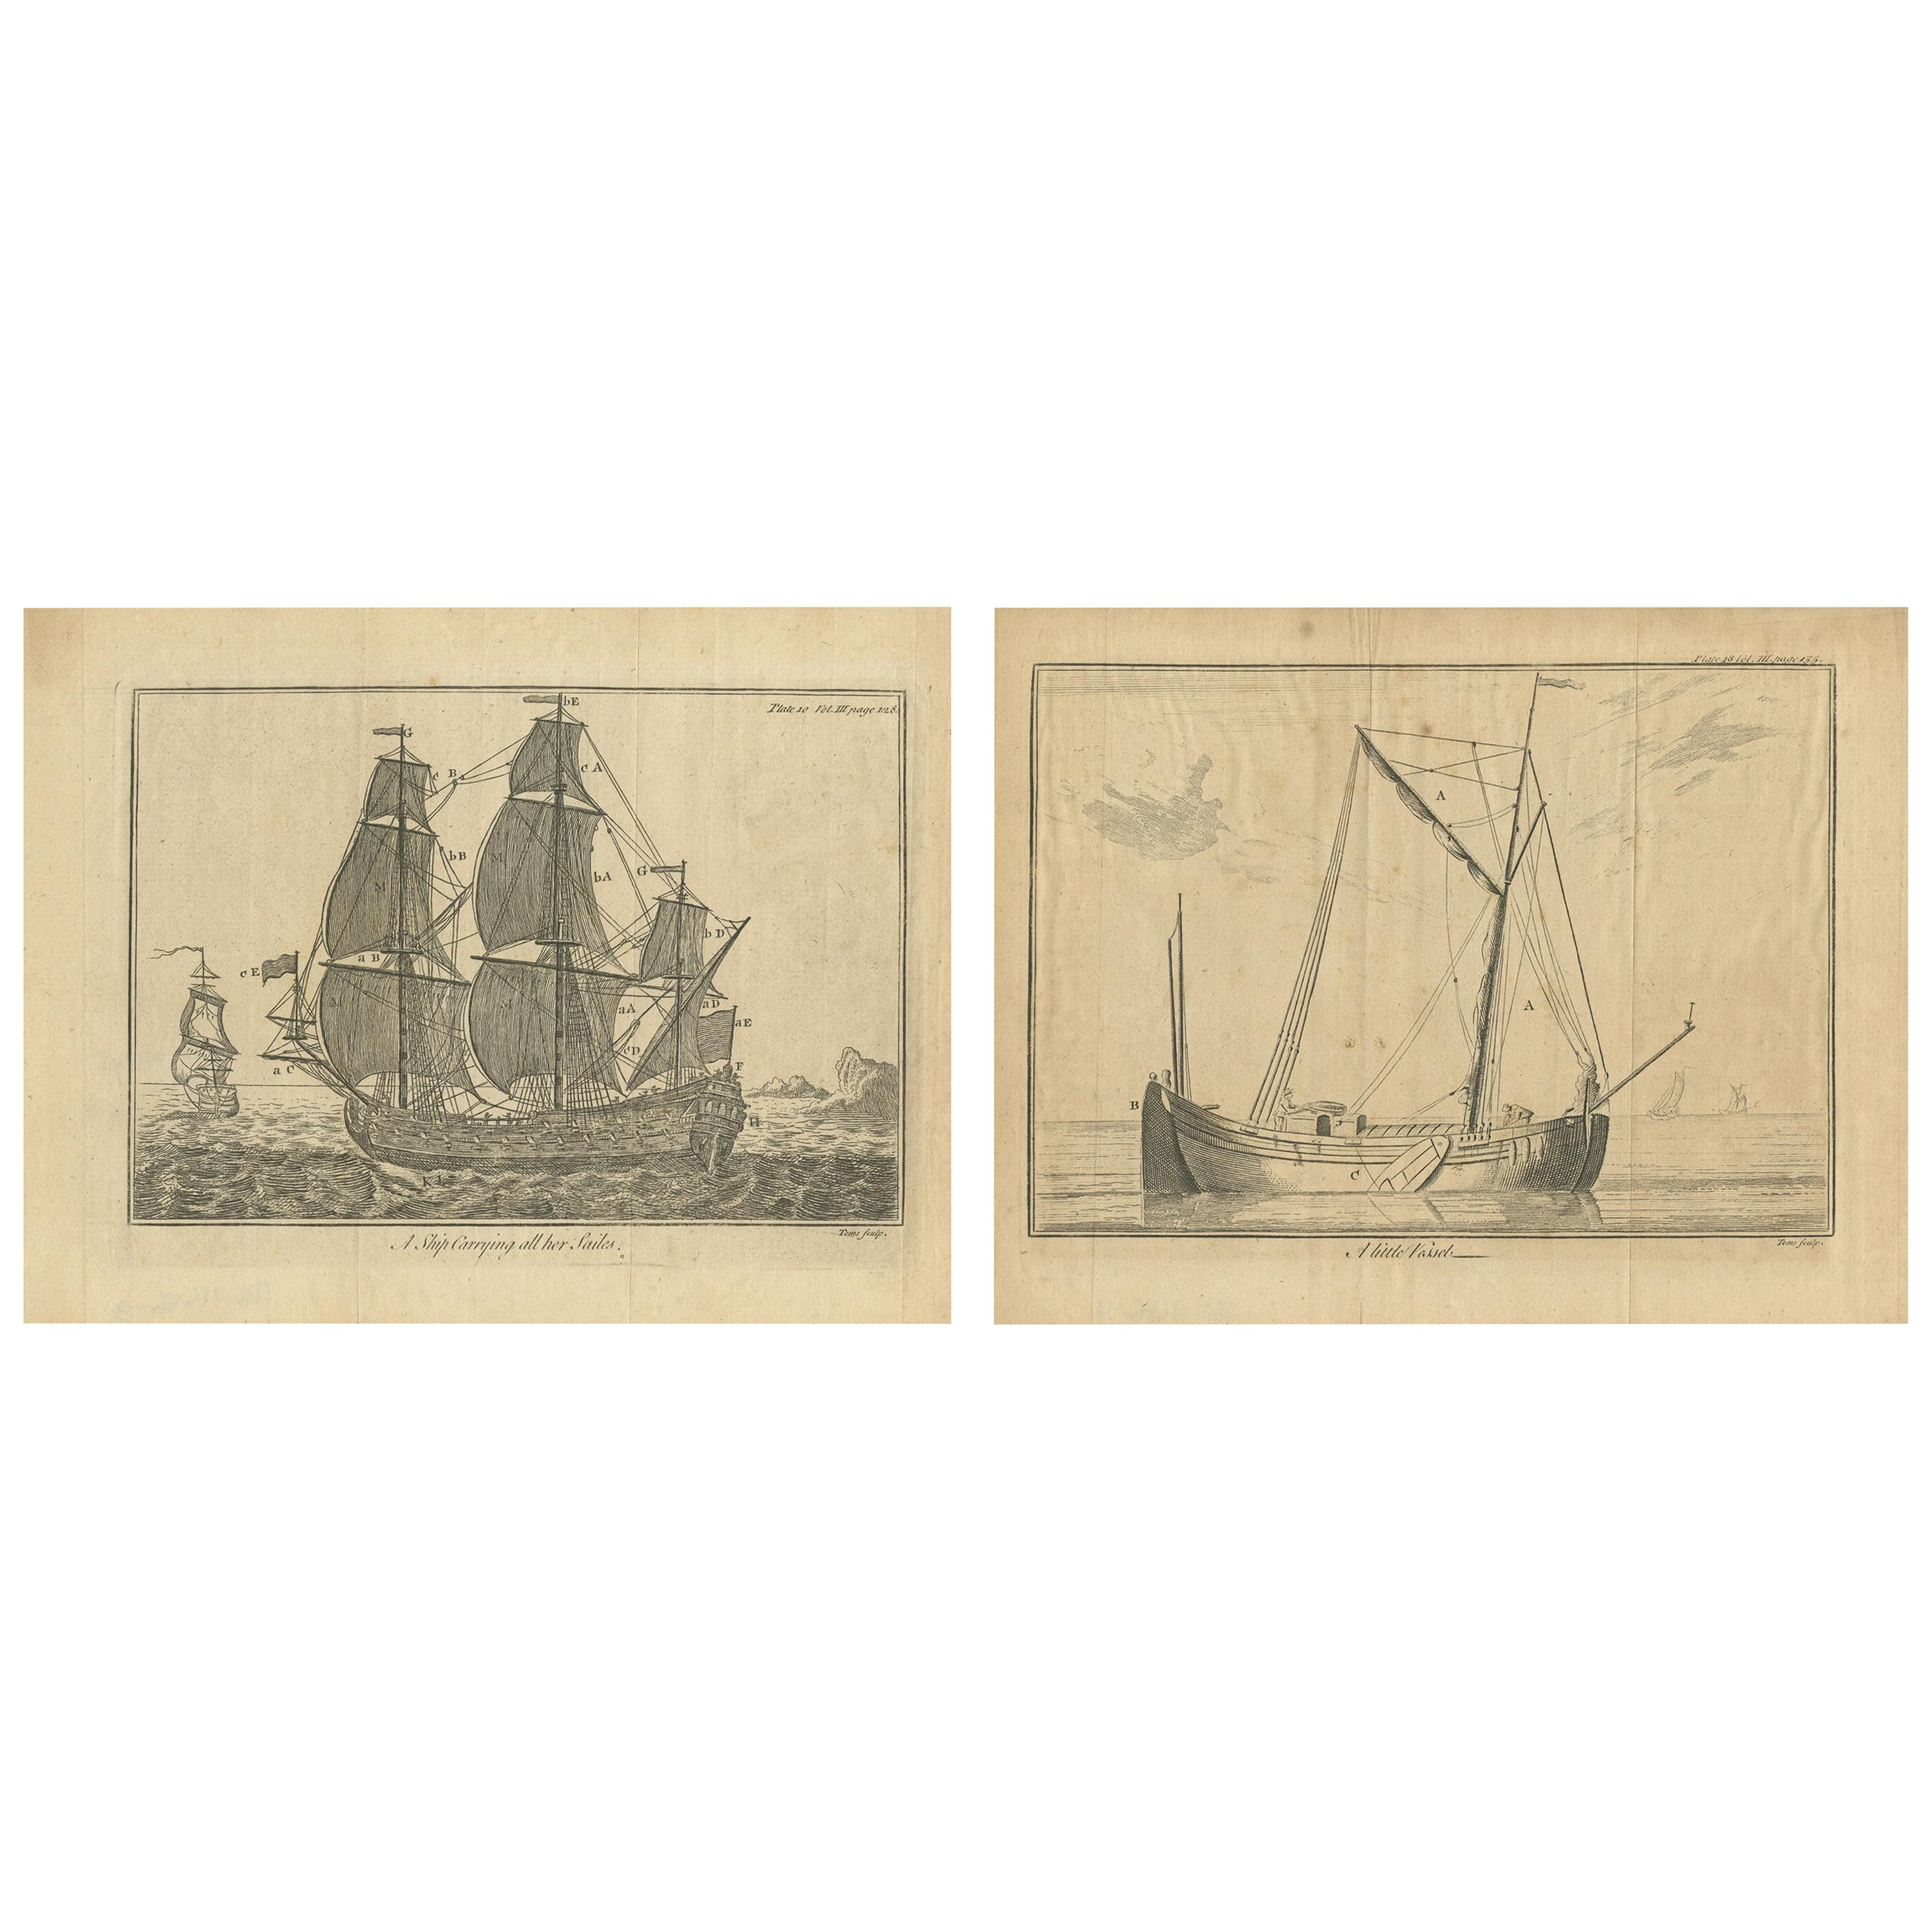 Set of 2 Antique Prints of Ships/Vessels by Pluche, 1750